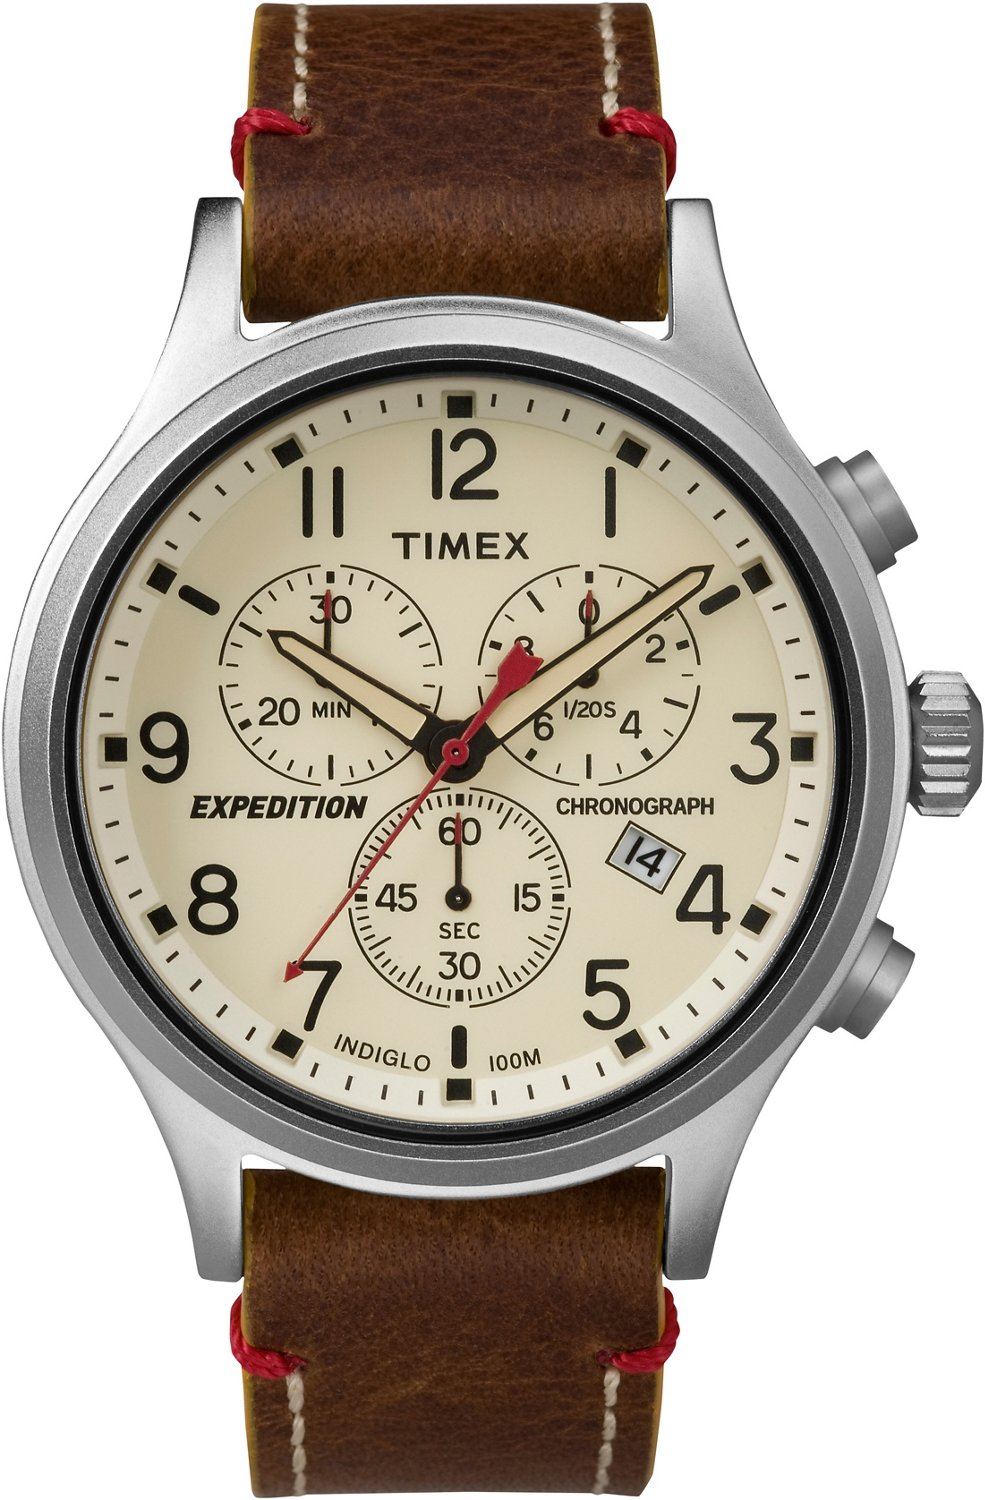 Timex Men's Expedition Full-Size Scout Chronograph Watch